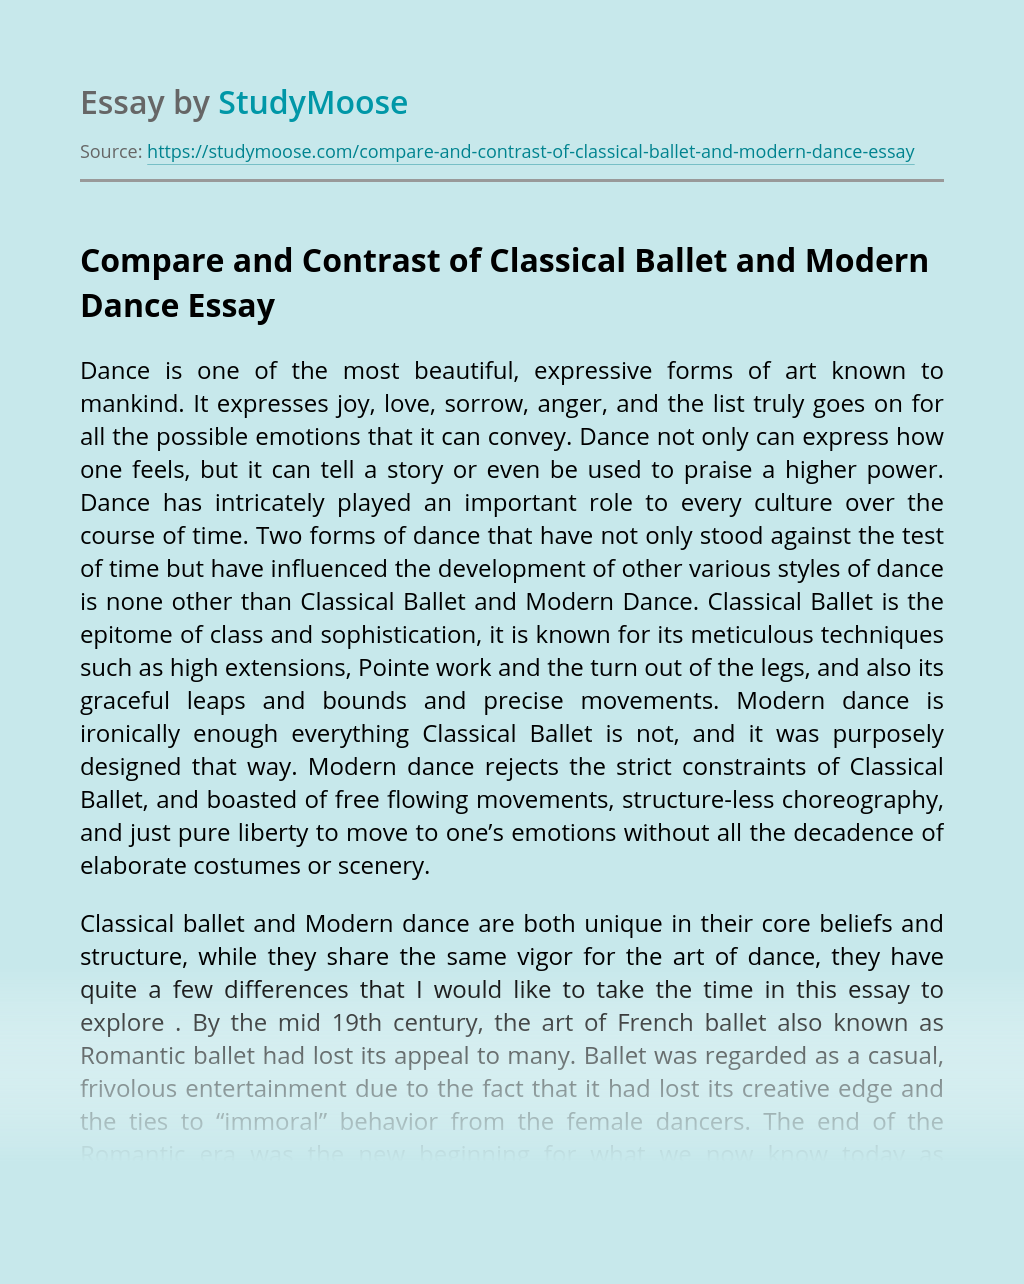 Compare and Contrast of Classical Ballet and Modern Dance